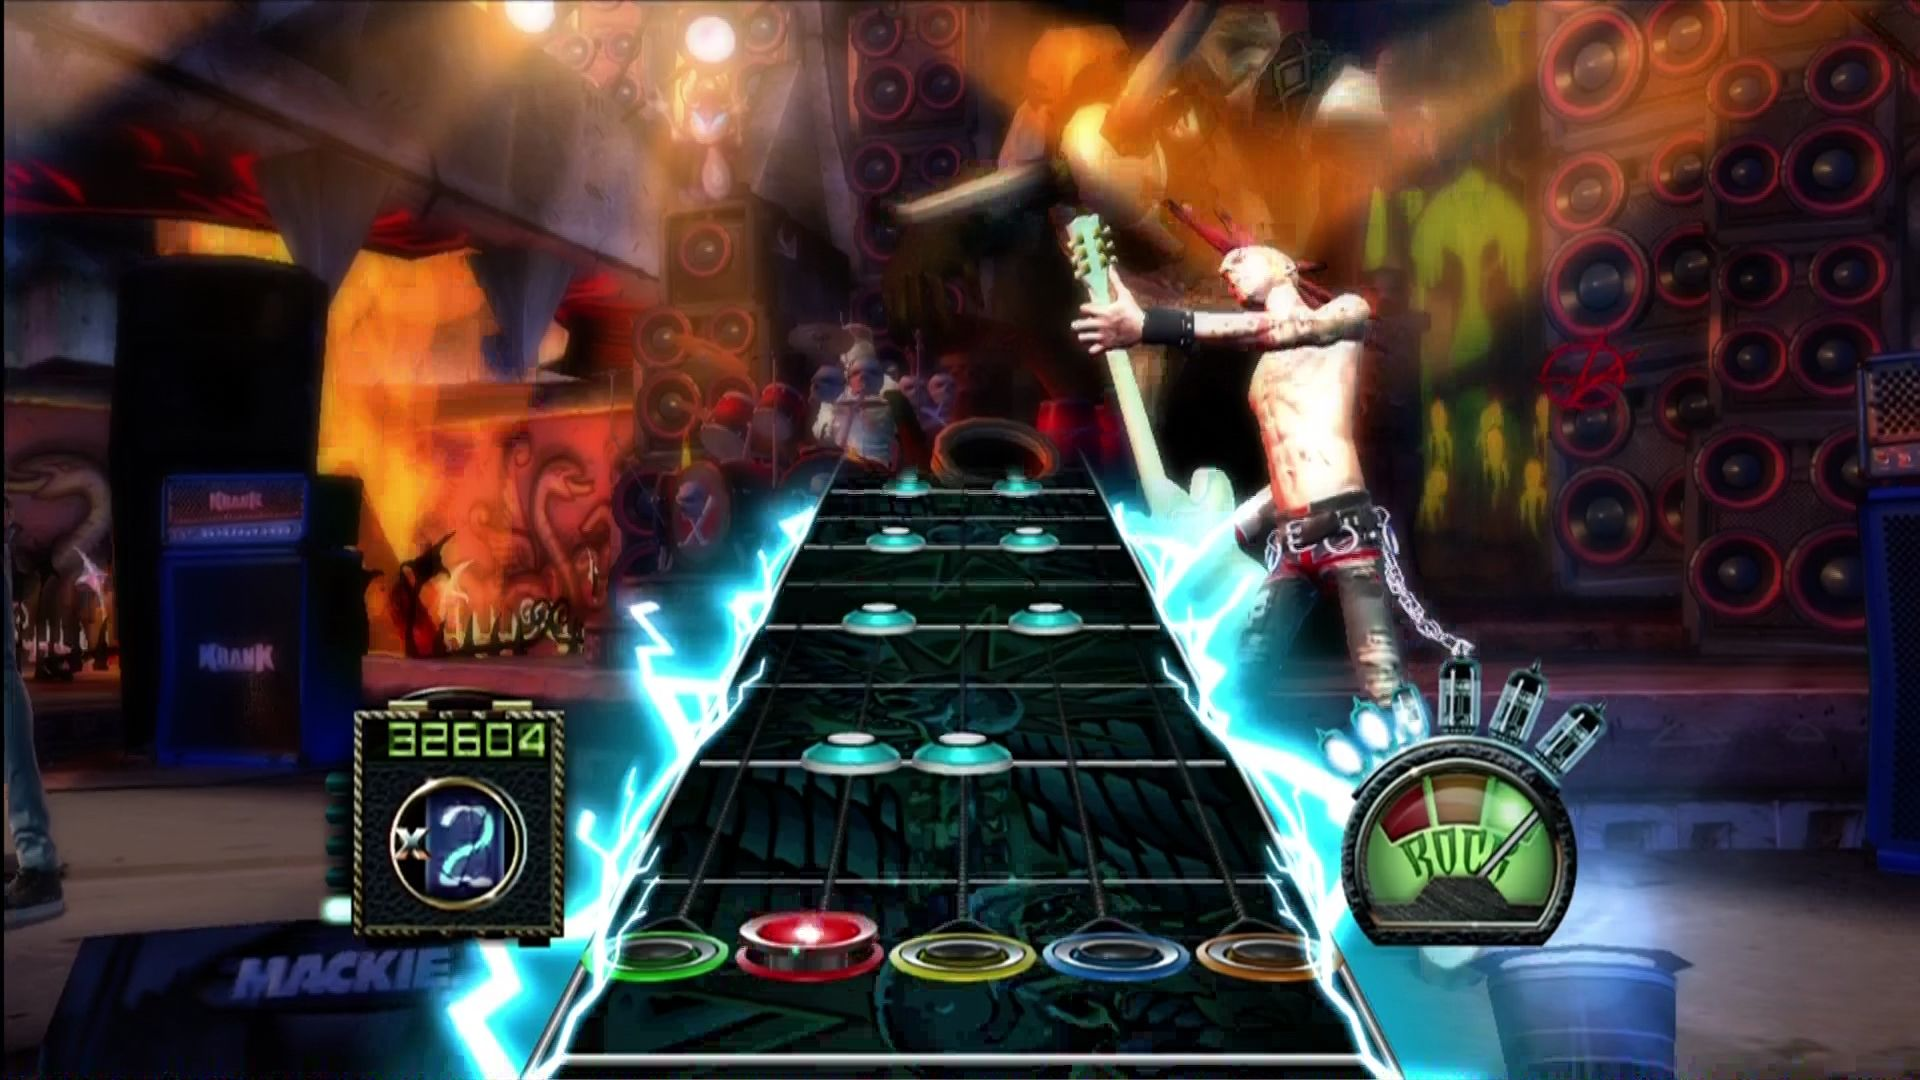 Guitar Hero III for Xbox 360 star power